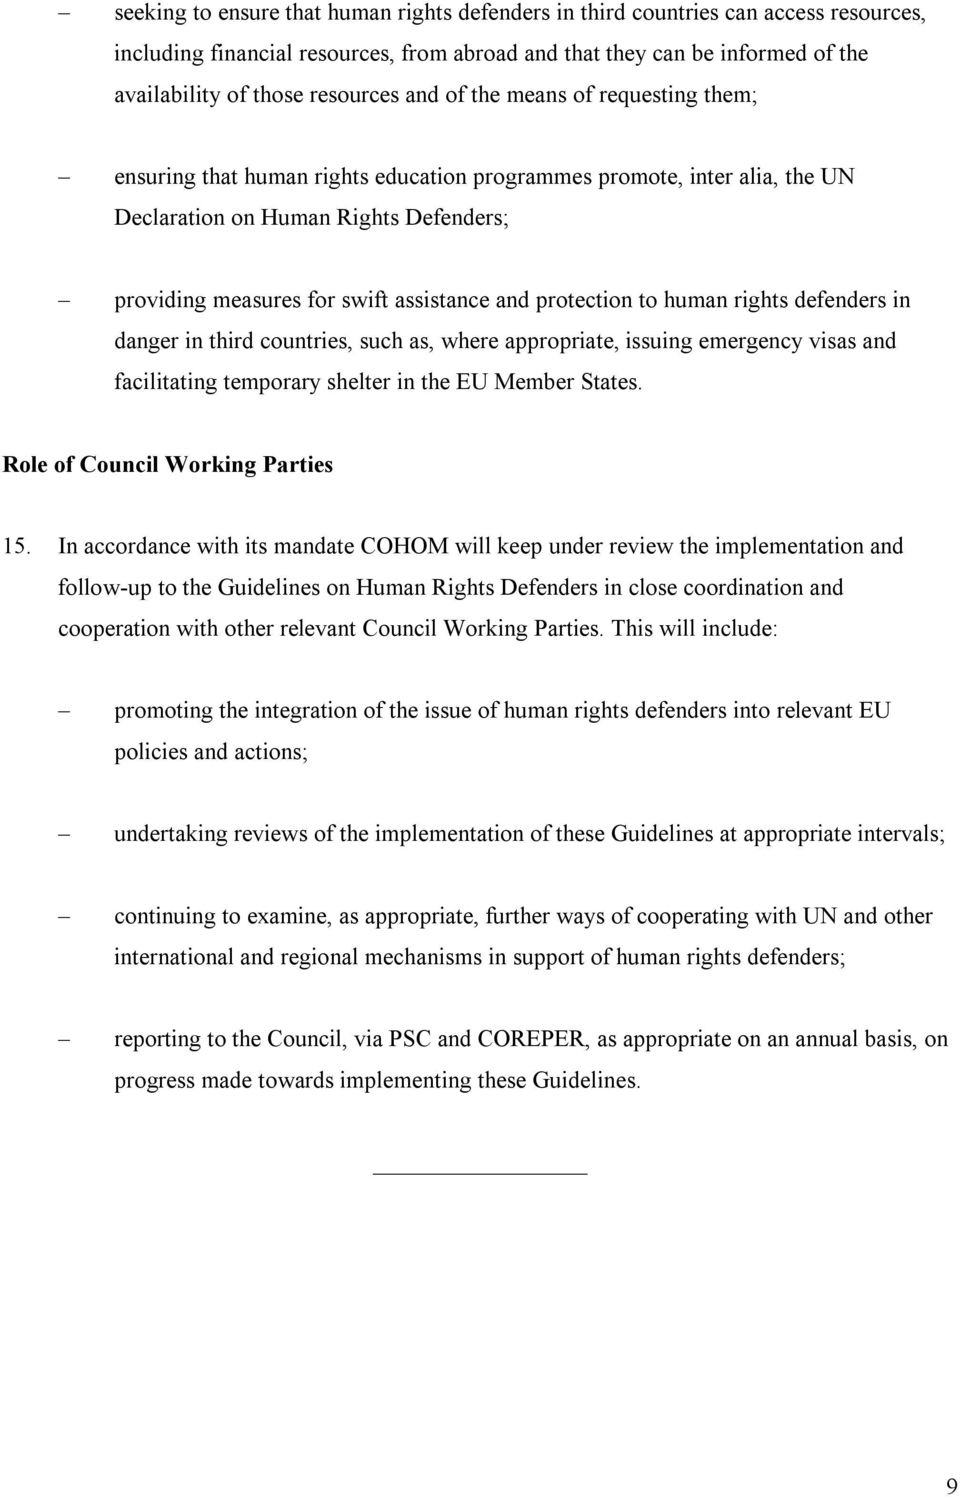 protection to human rights defenders in danger in third countries, such as, where appropriate, issuing emergency visas and facilitating temporary shelter in the EU Member States.